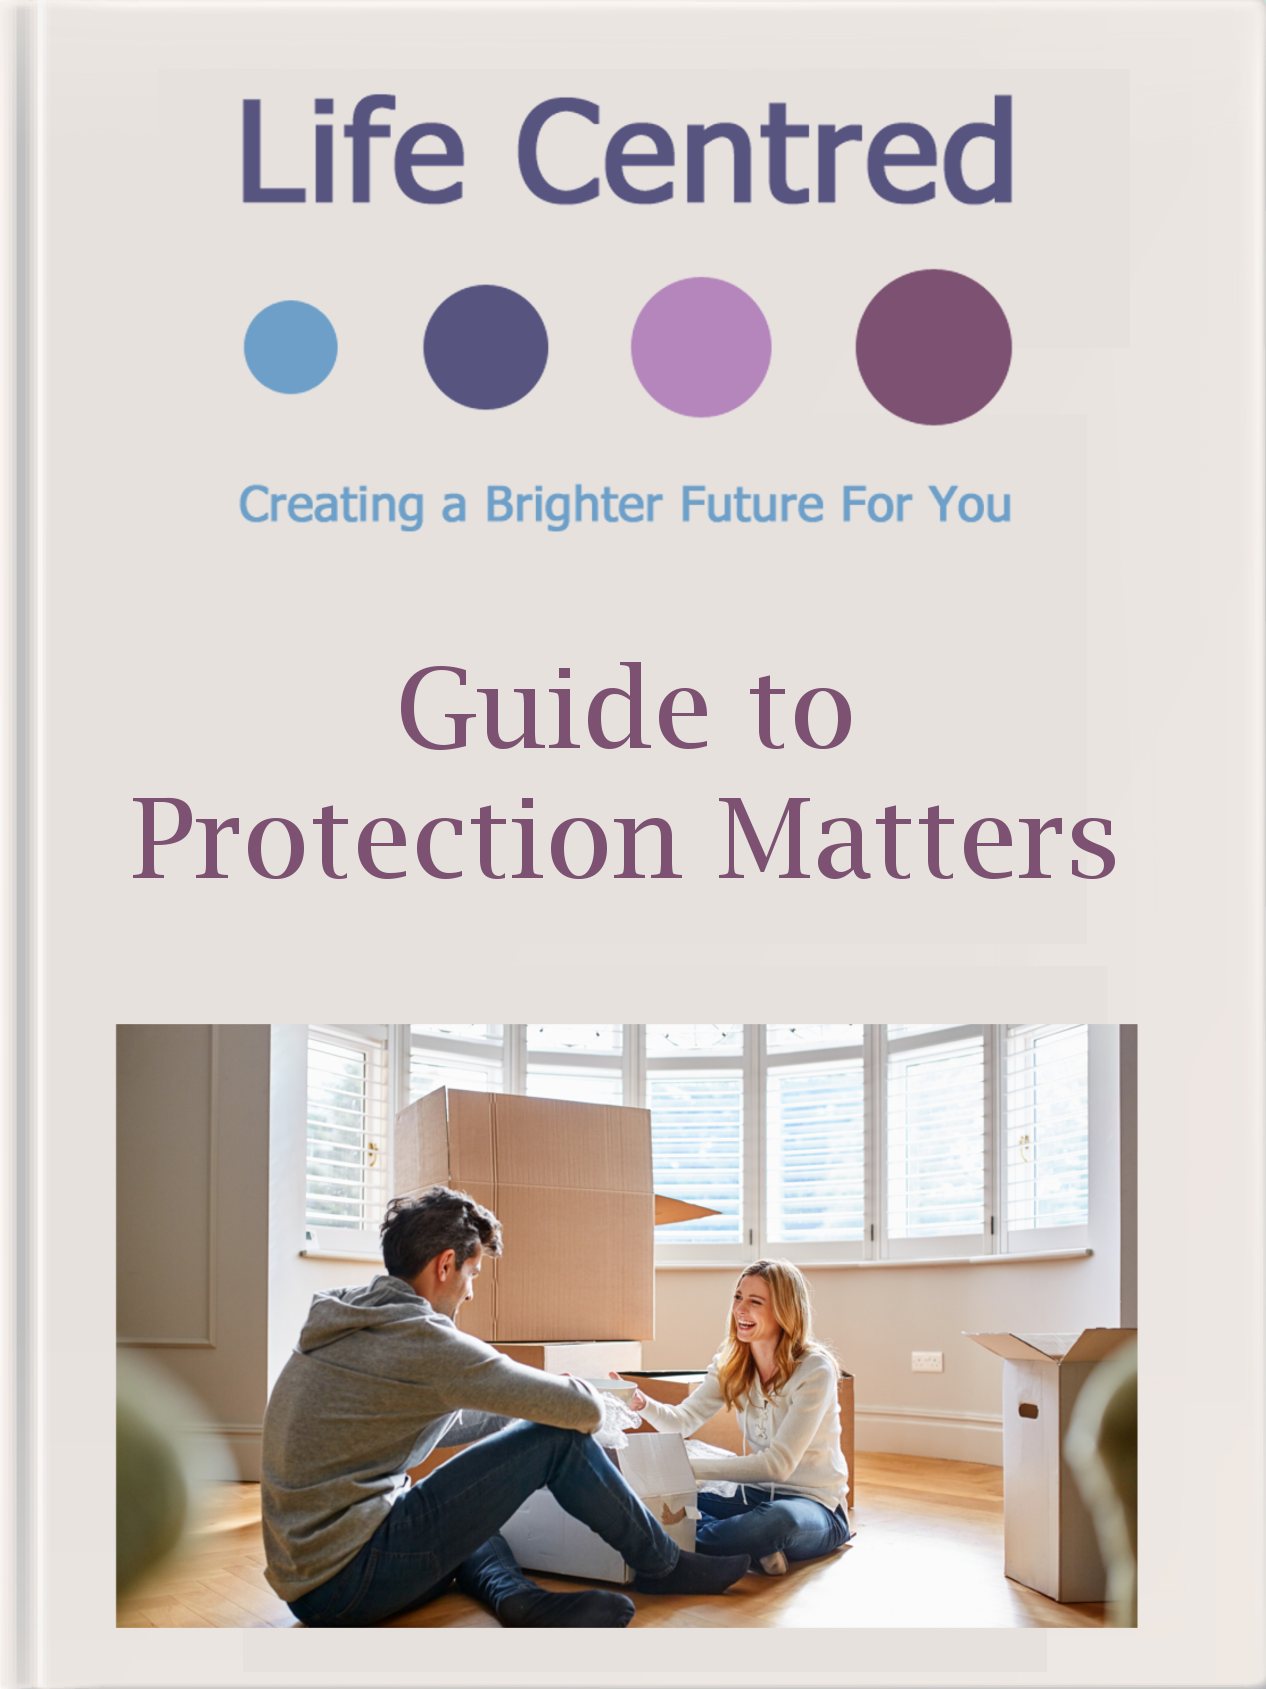 Download our Guide to Protection Matters